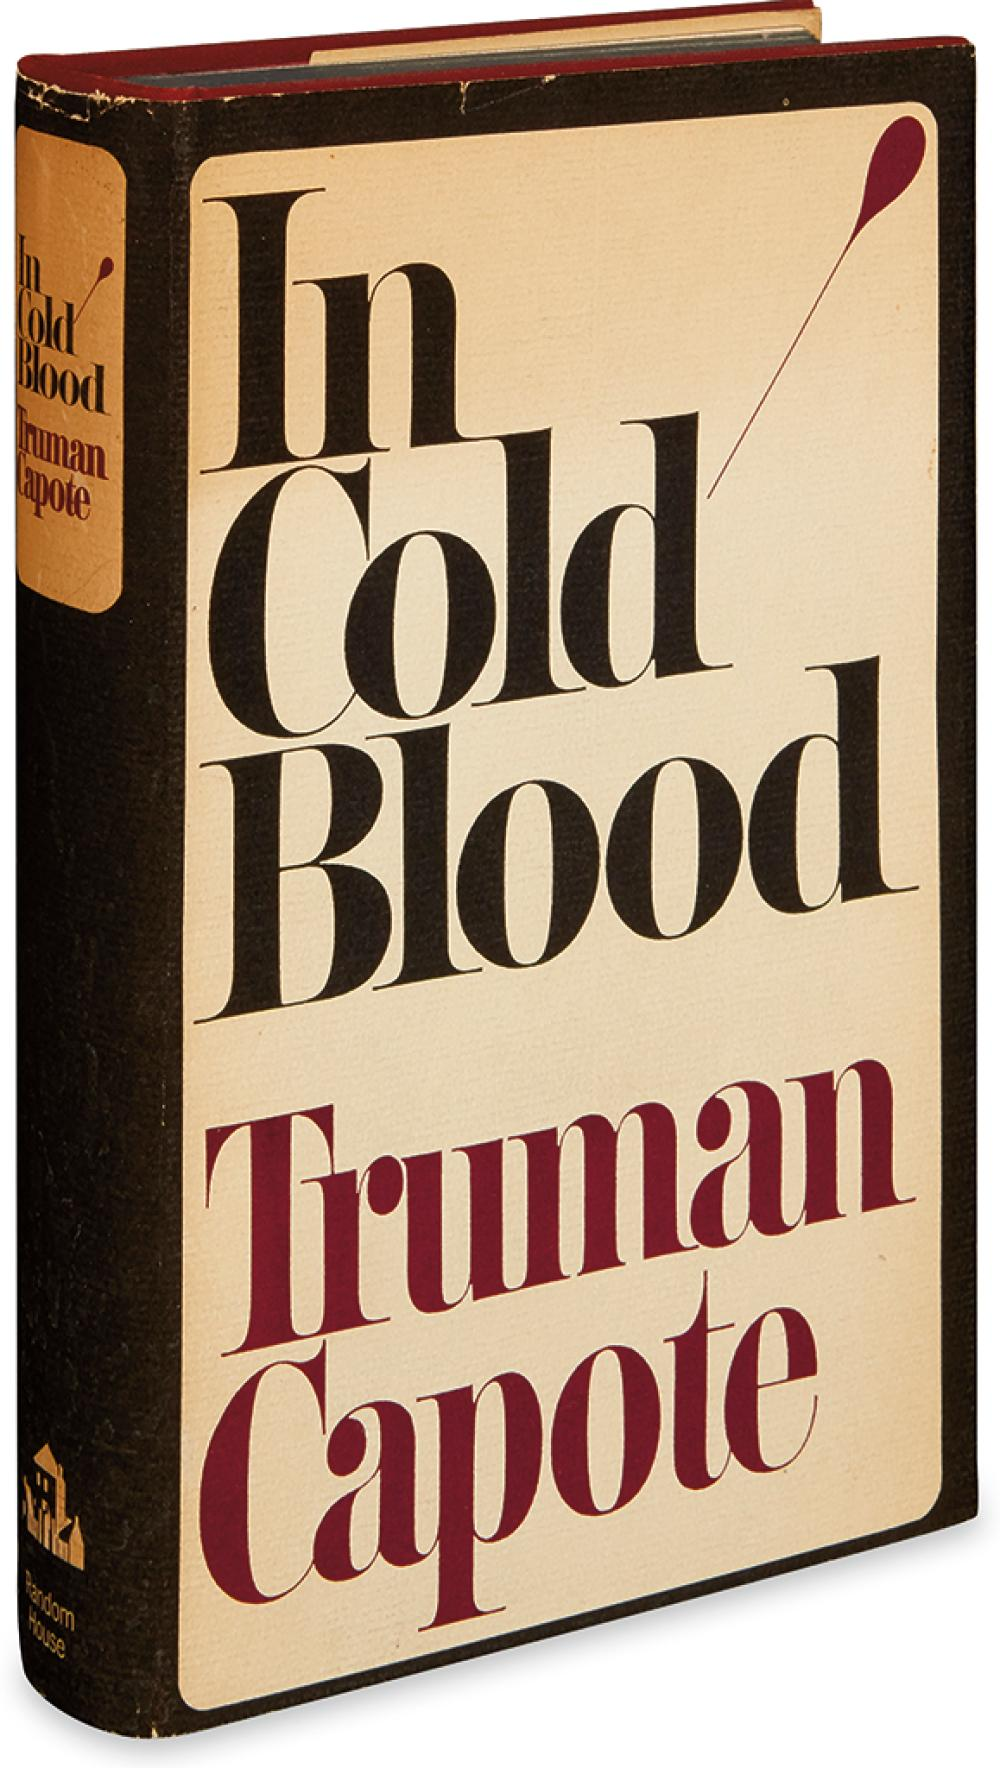 CAPOTE, TRUMAN. In Cold Blood.